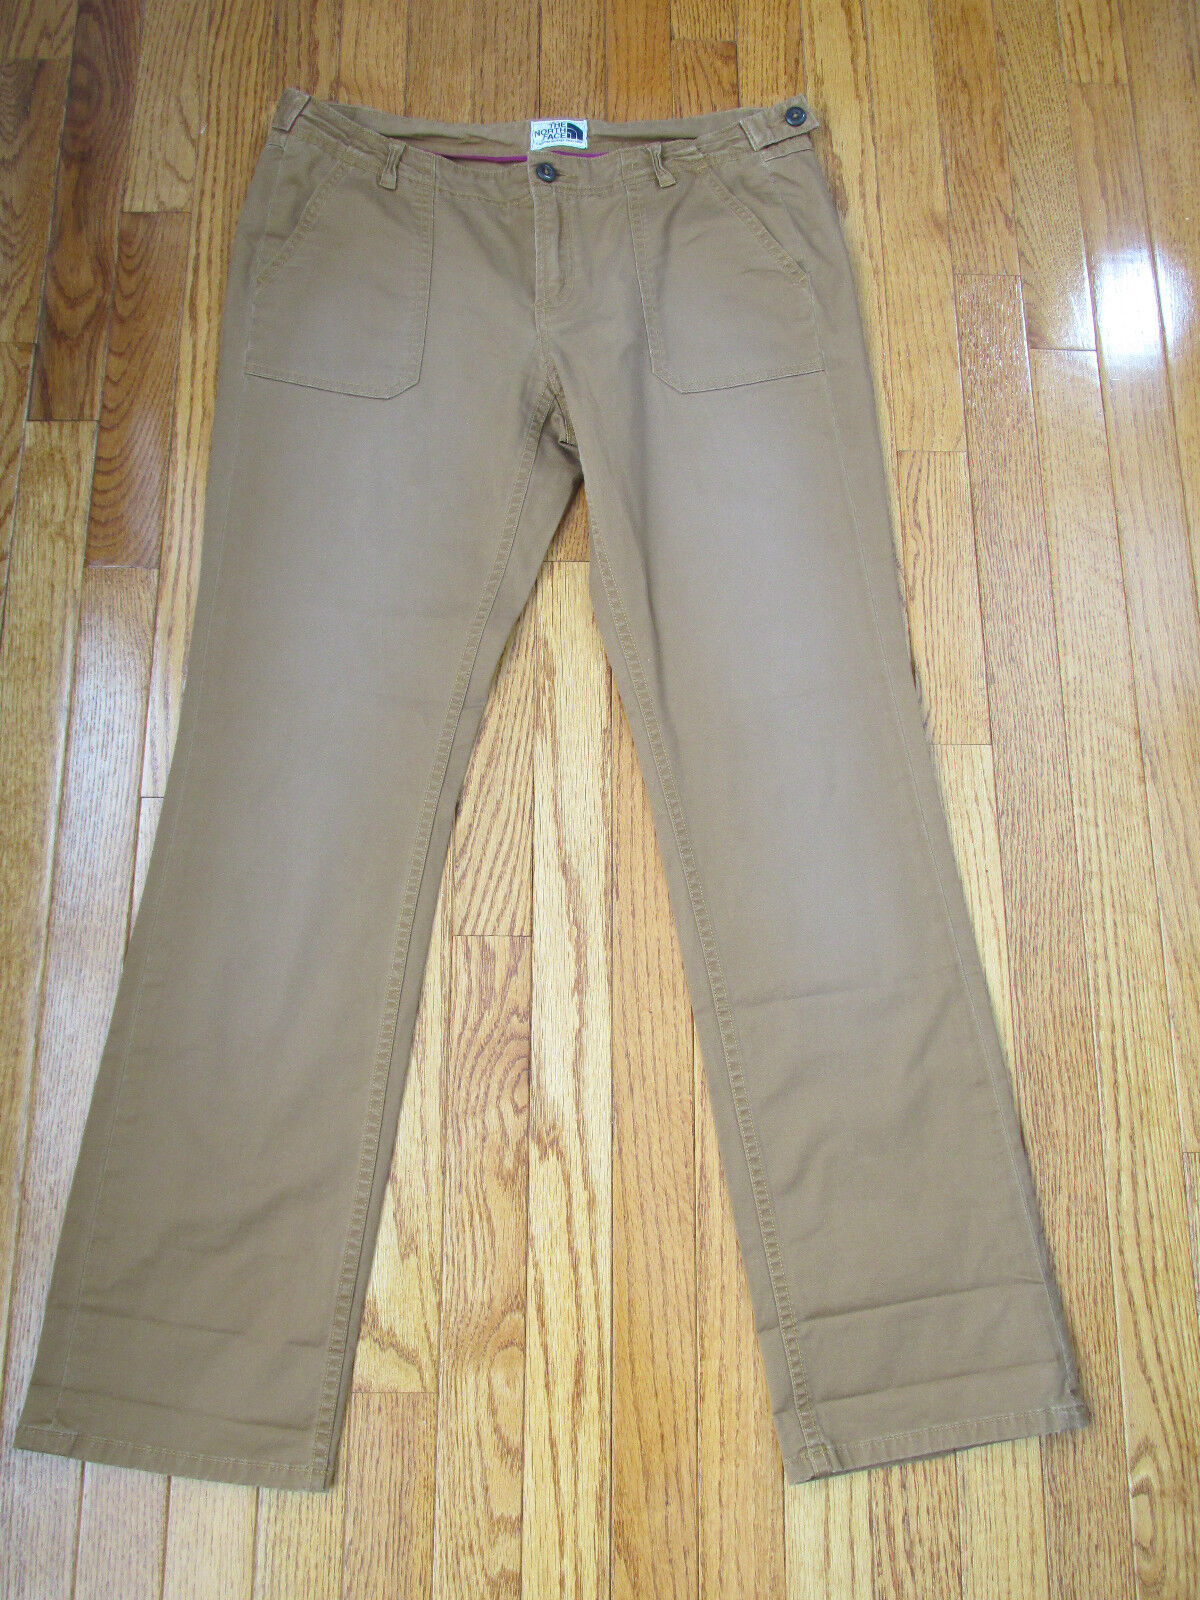 New The North Face Size 12 Bronx Brown Aniak Roll Up Twill Cotton Pants